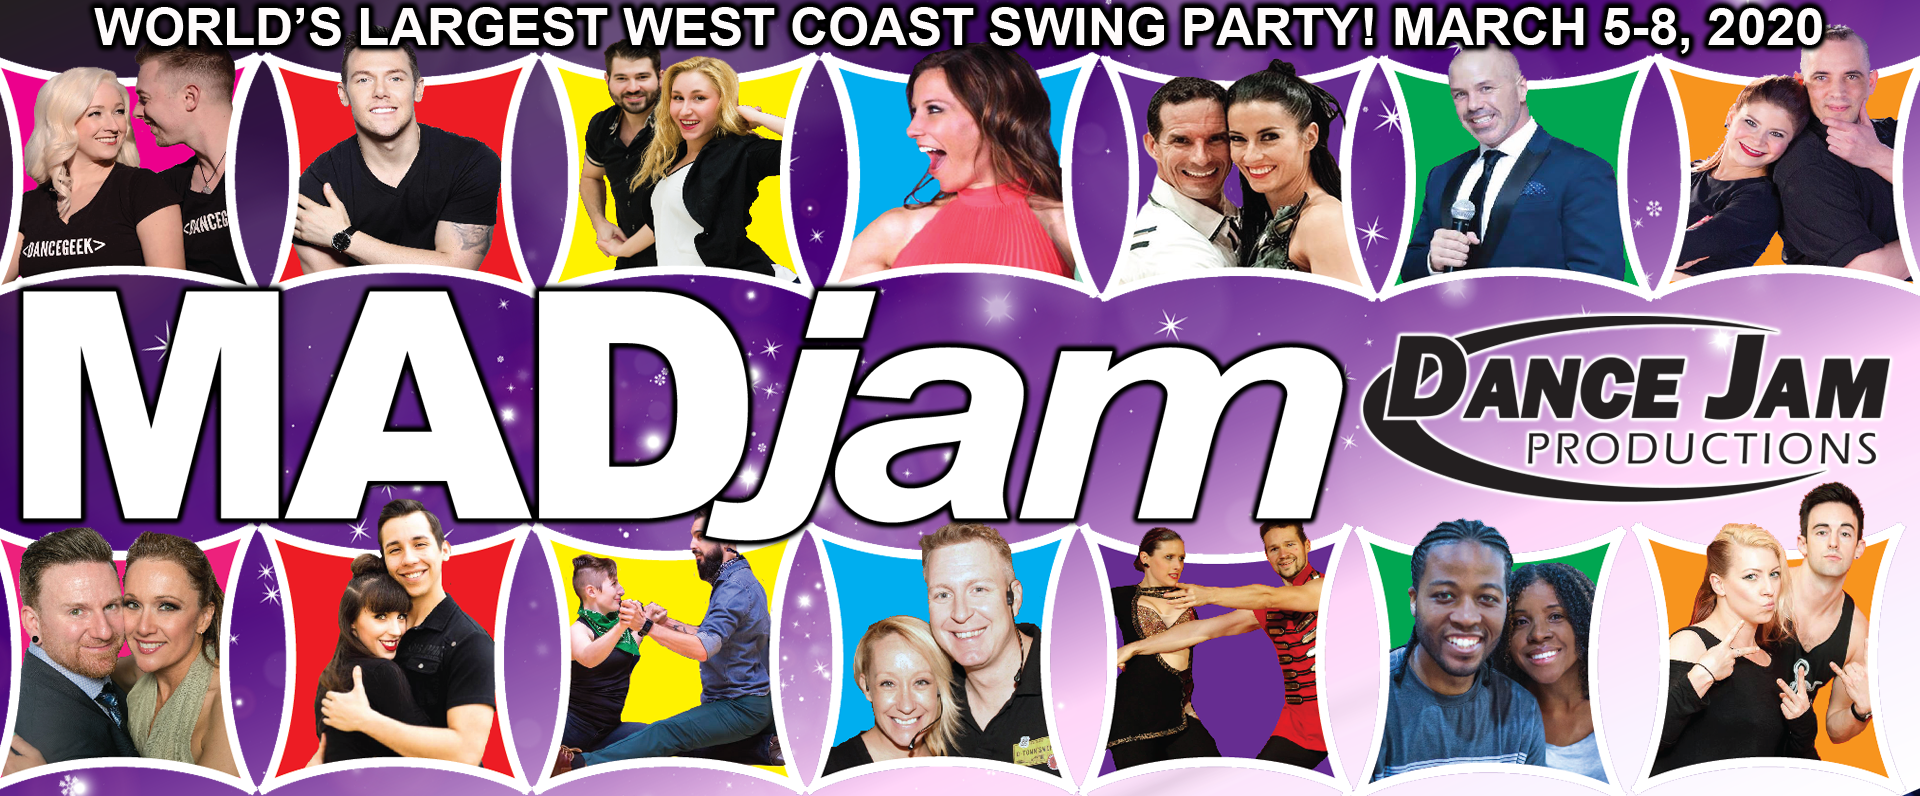 West Coast Swing Events 2020.Dance Weekends Fusion Swing